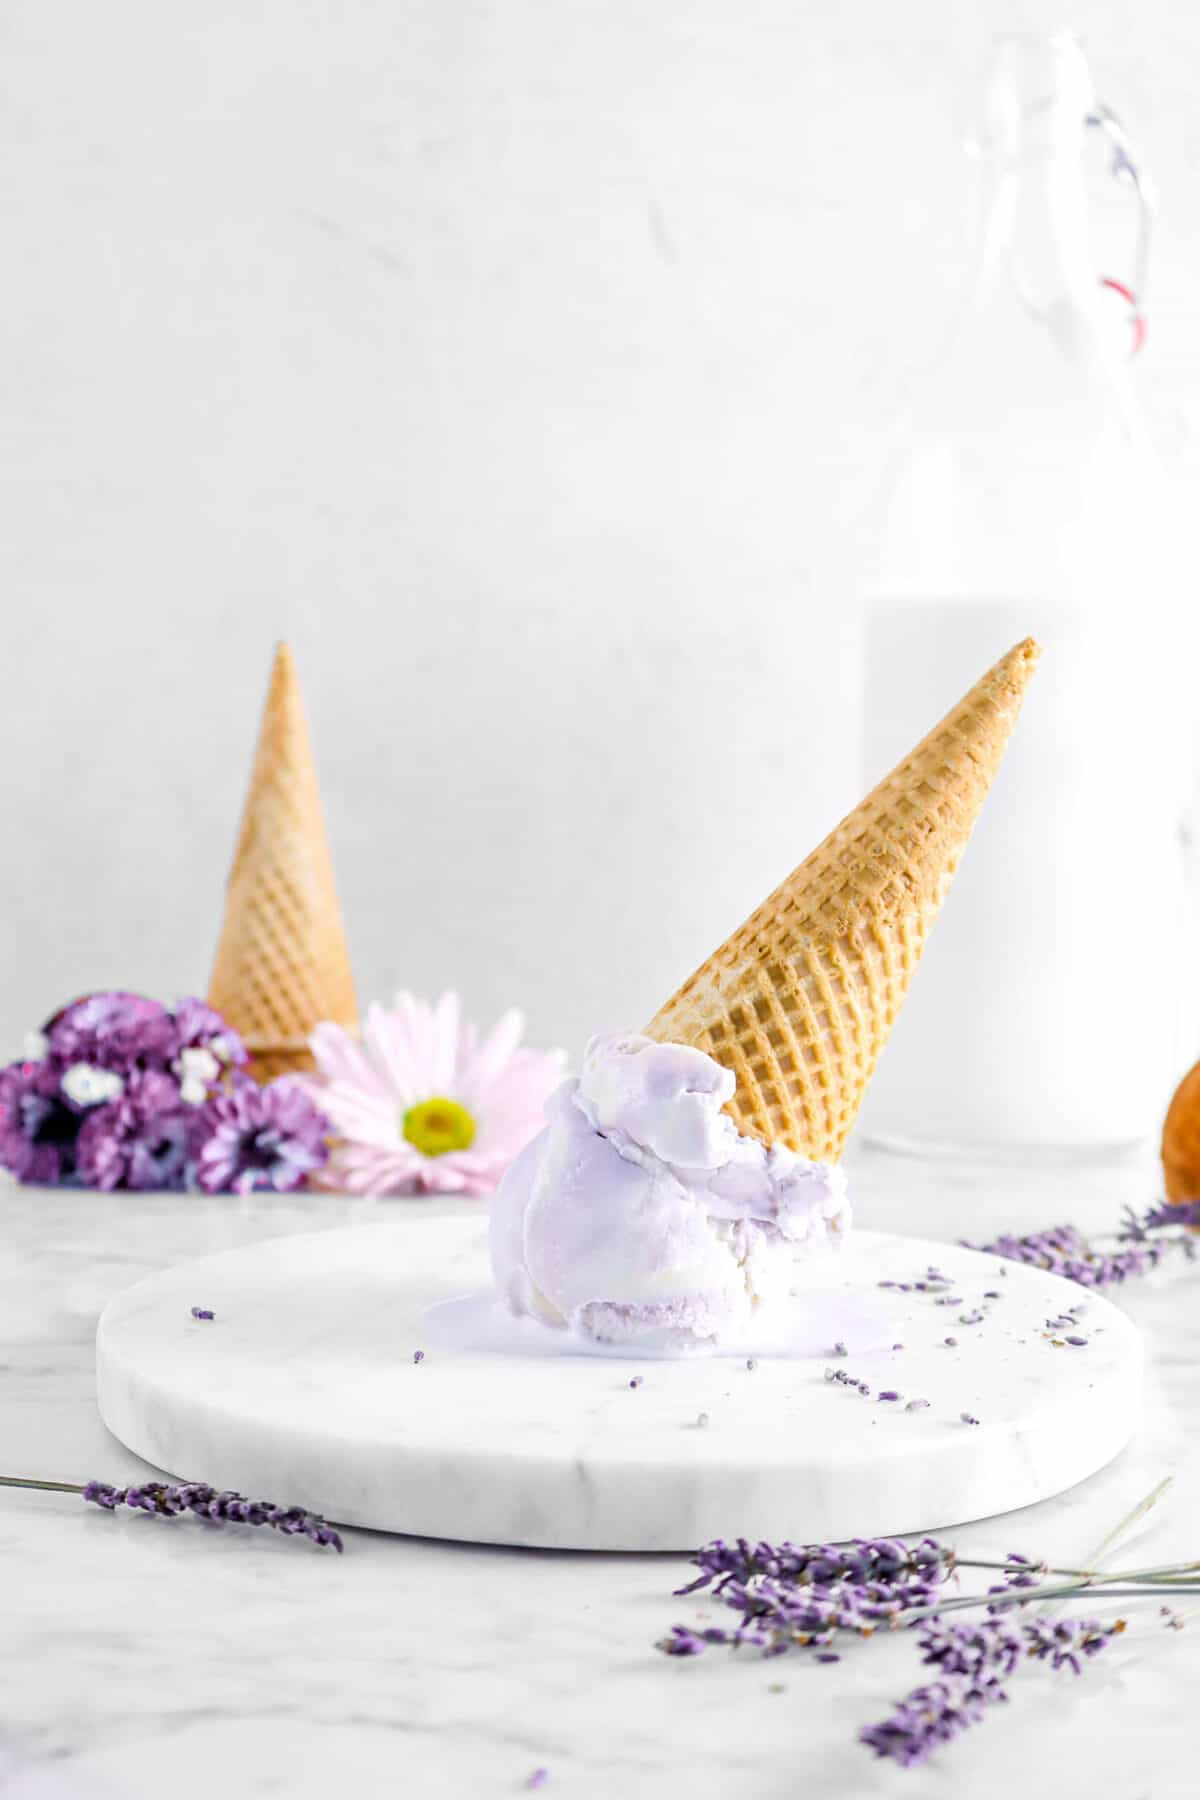 lavender ice cream upside with died lavender, with flowers and glass of milk